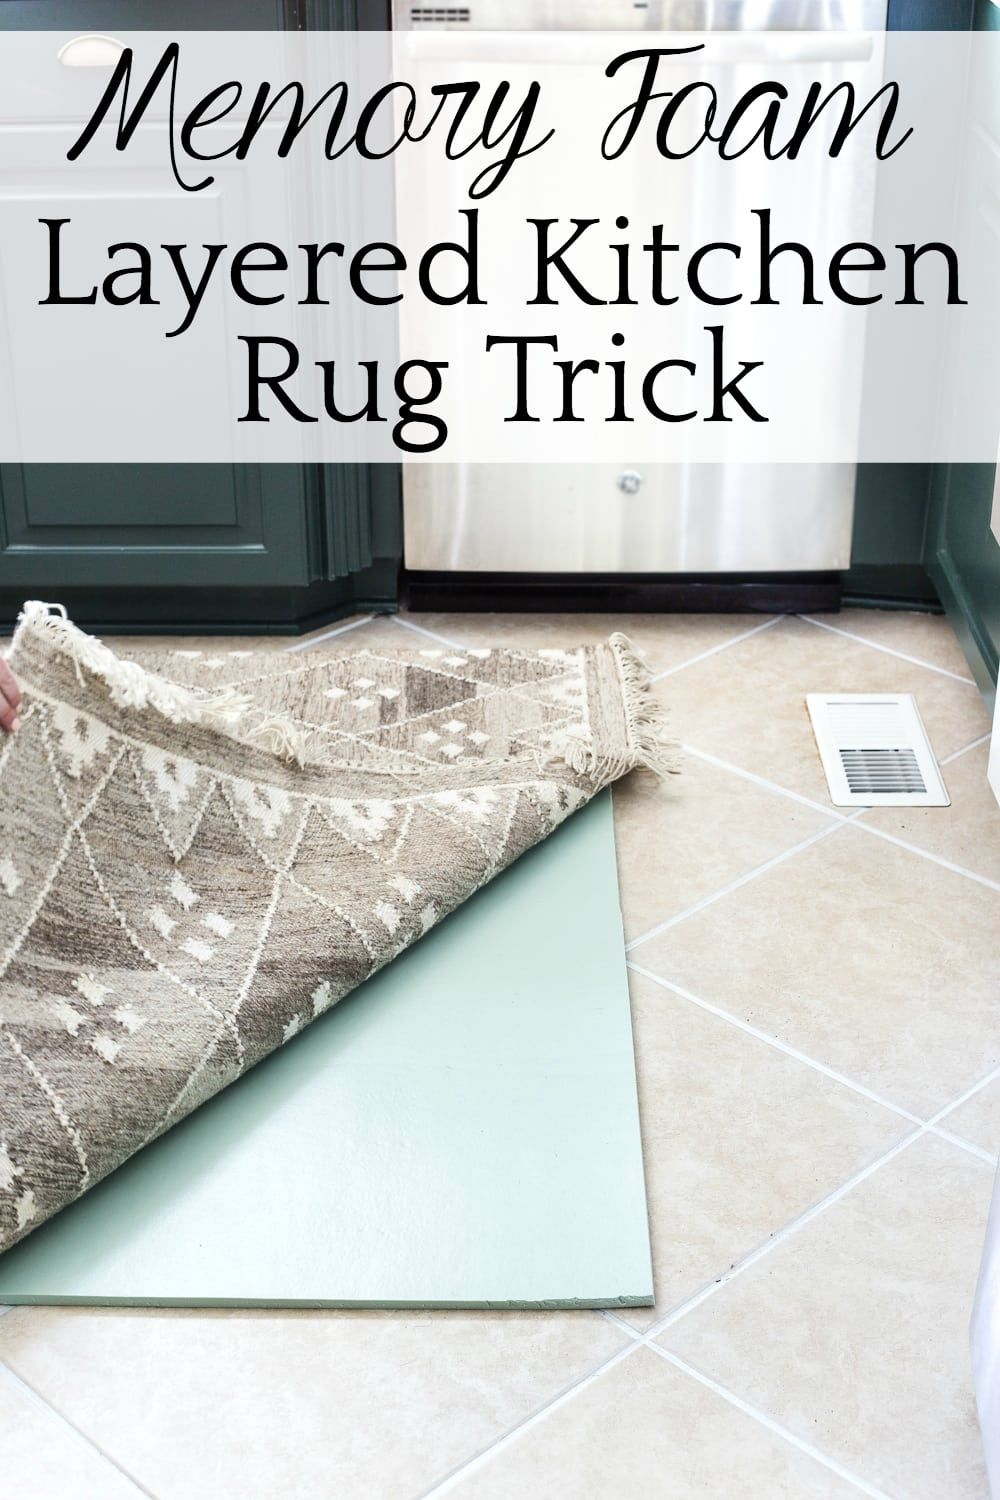 memory foam kitchen rug to go layered and tile grout refresh tips how cheaply easily add comfort your floor with a kitchenfloor kitchenrug